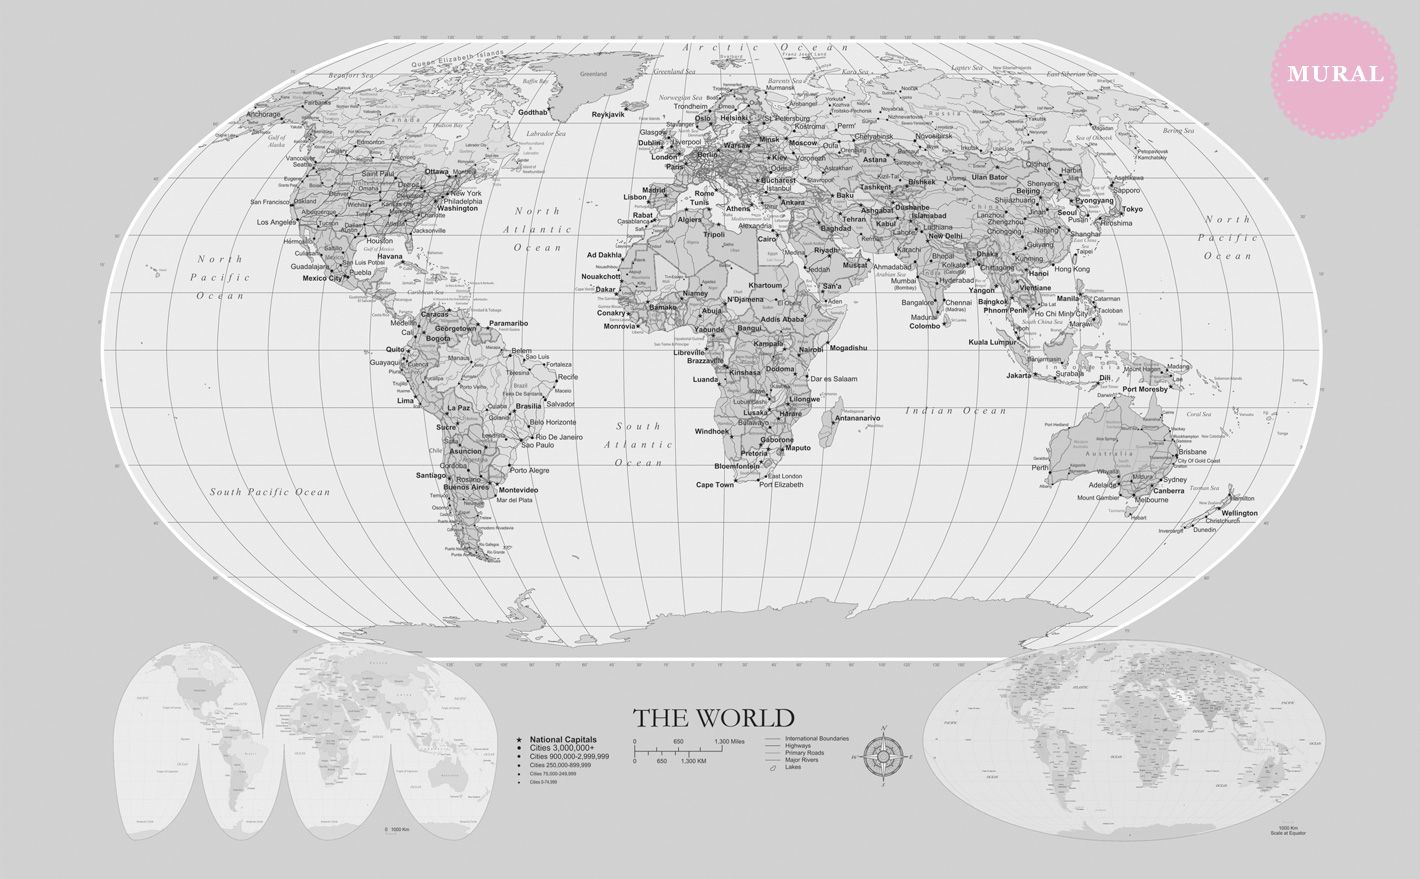 World map wallpaper 24m high x 37m wide no of panels 4 53280 world map wallpaper 24m high x 37m wide no of panels gumiabroncs Choice Image